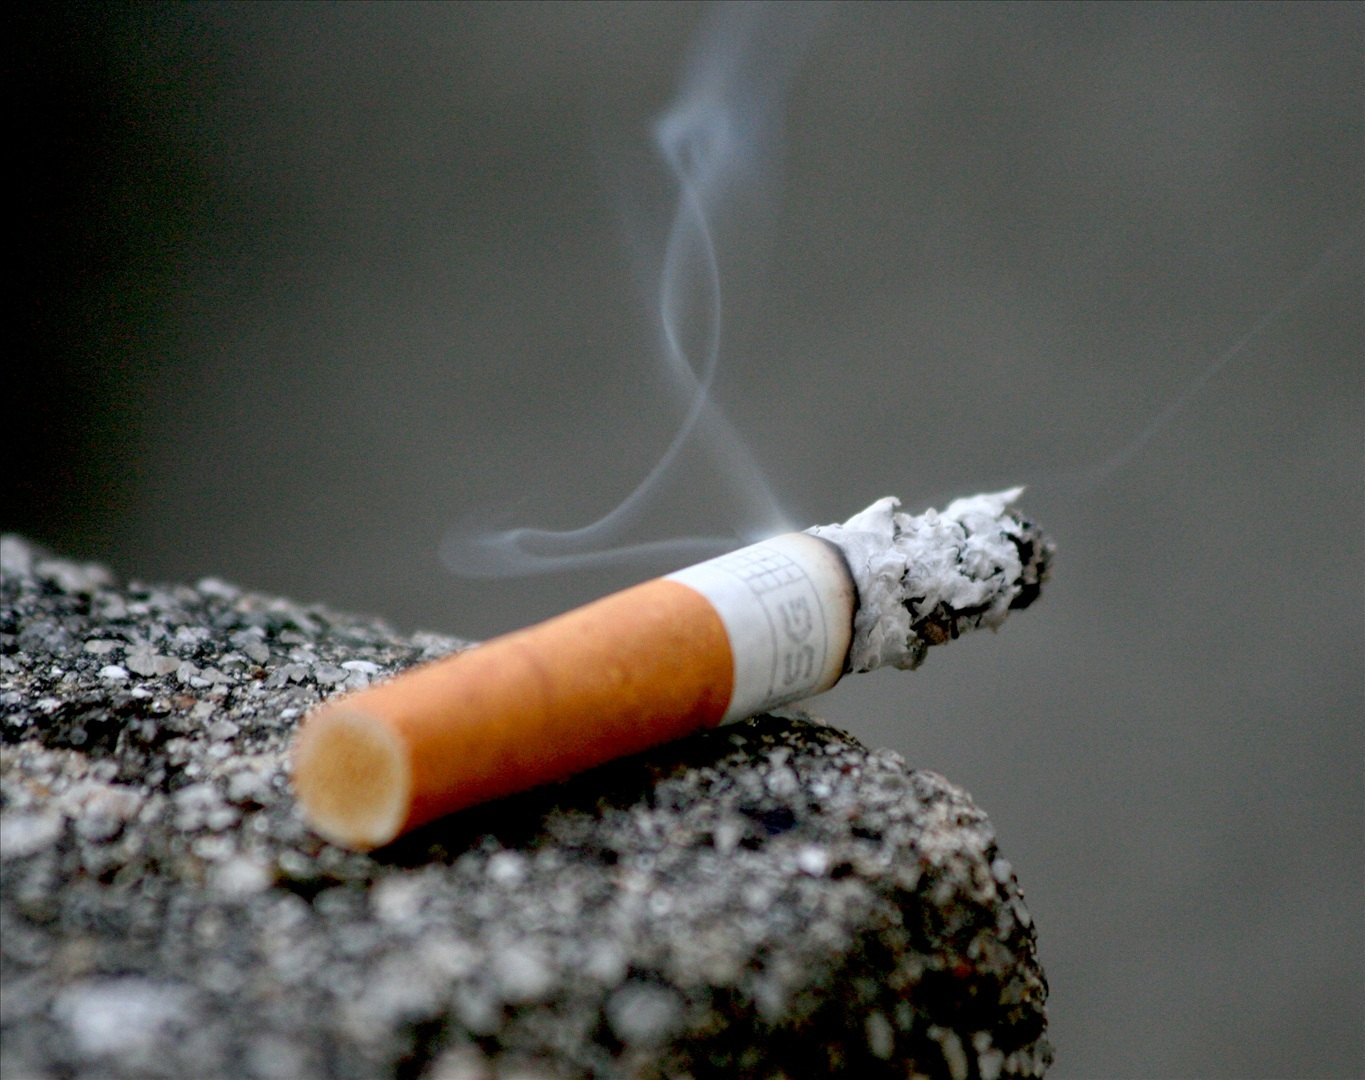 a study of cigarette smoke It's no secret cigarette smoke can be detrimental to your lungs and heart however, scientists have recently discovered that marijuana inhalation could be even worse, according to a new study.